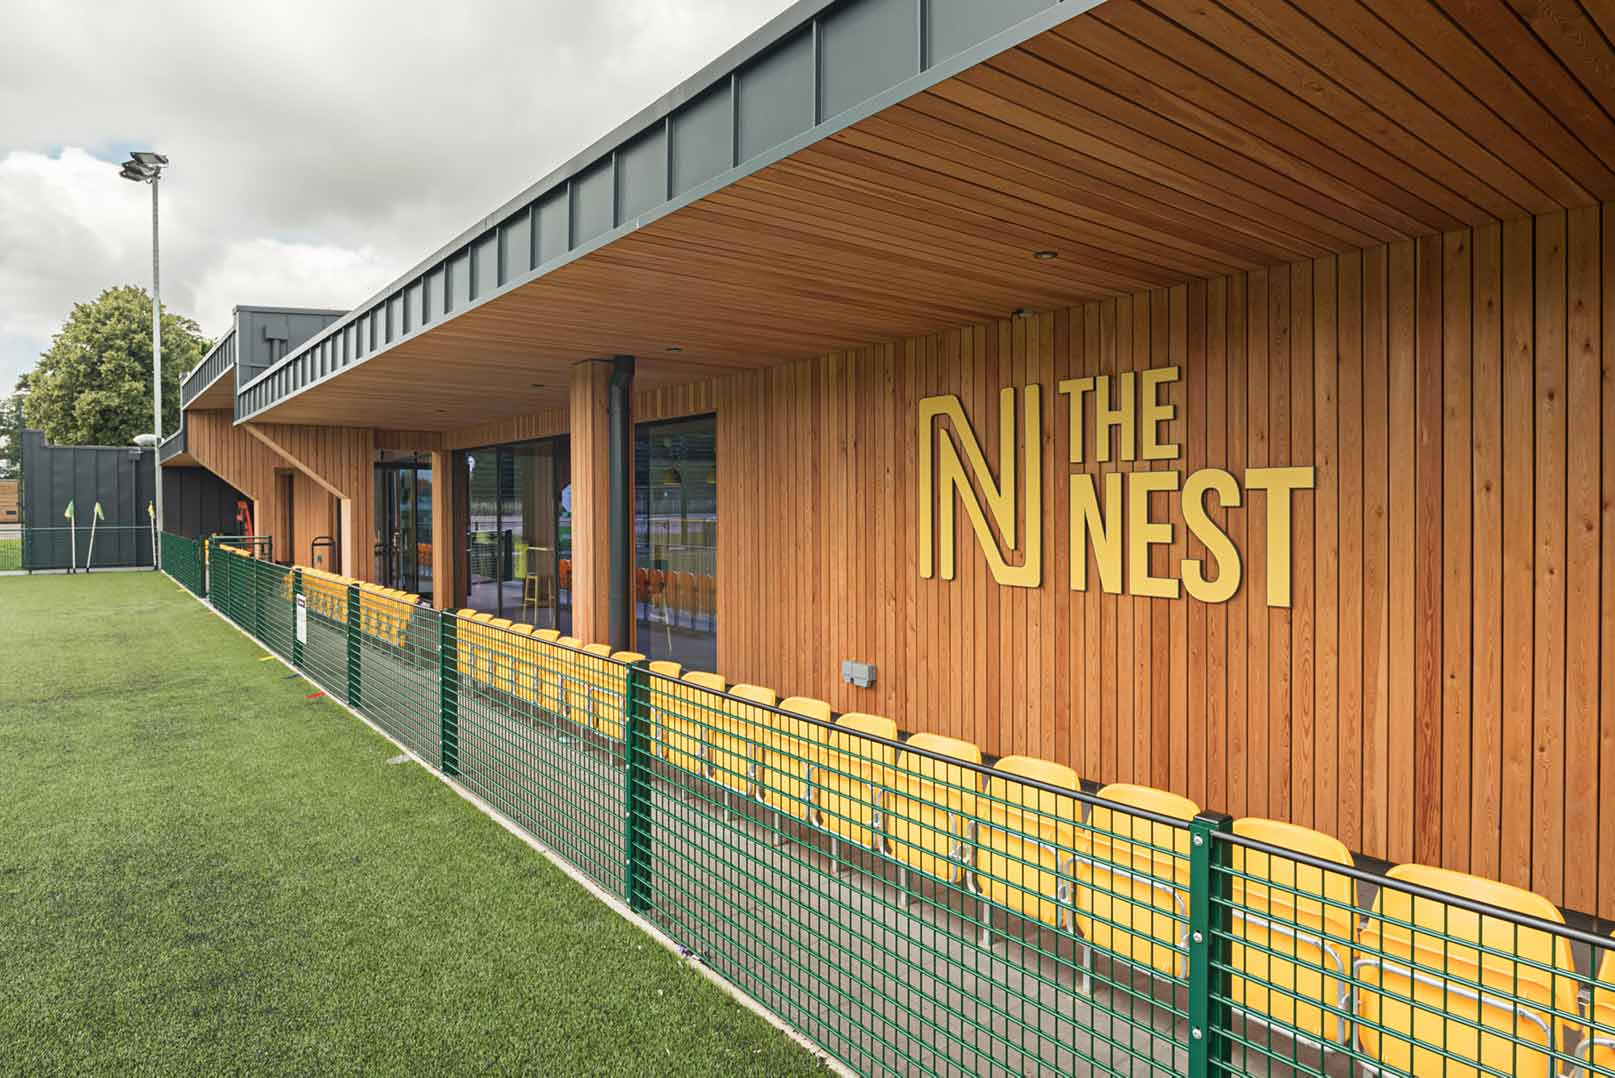 The Nest logo taken from the 3G pitch